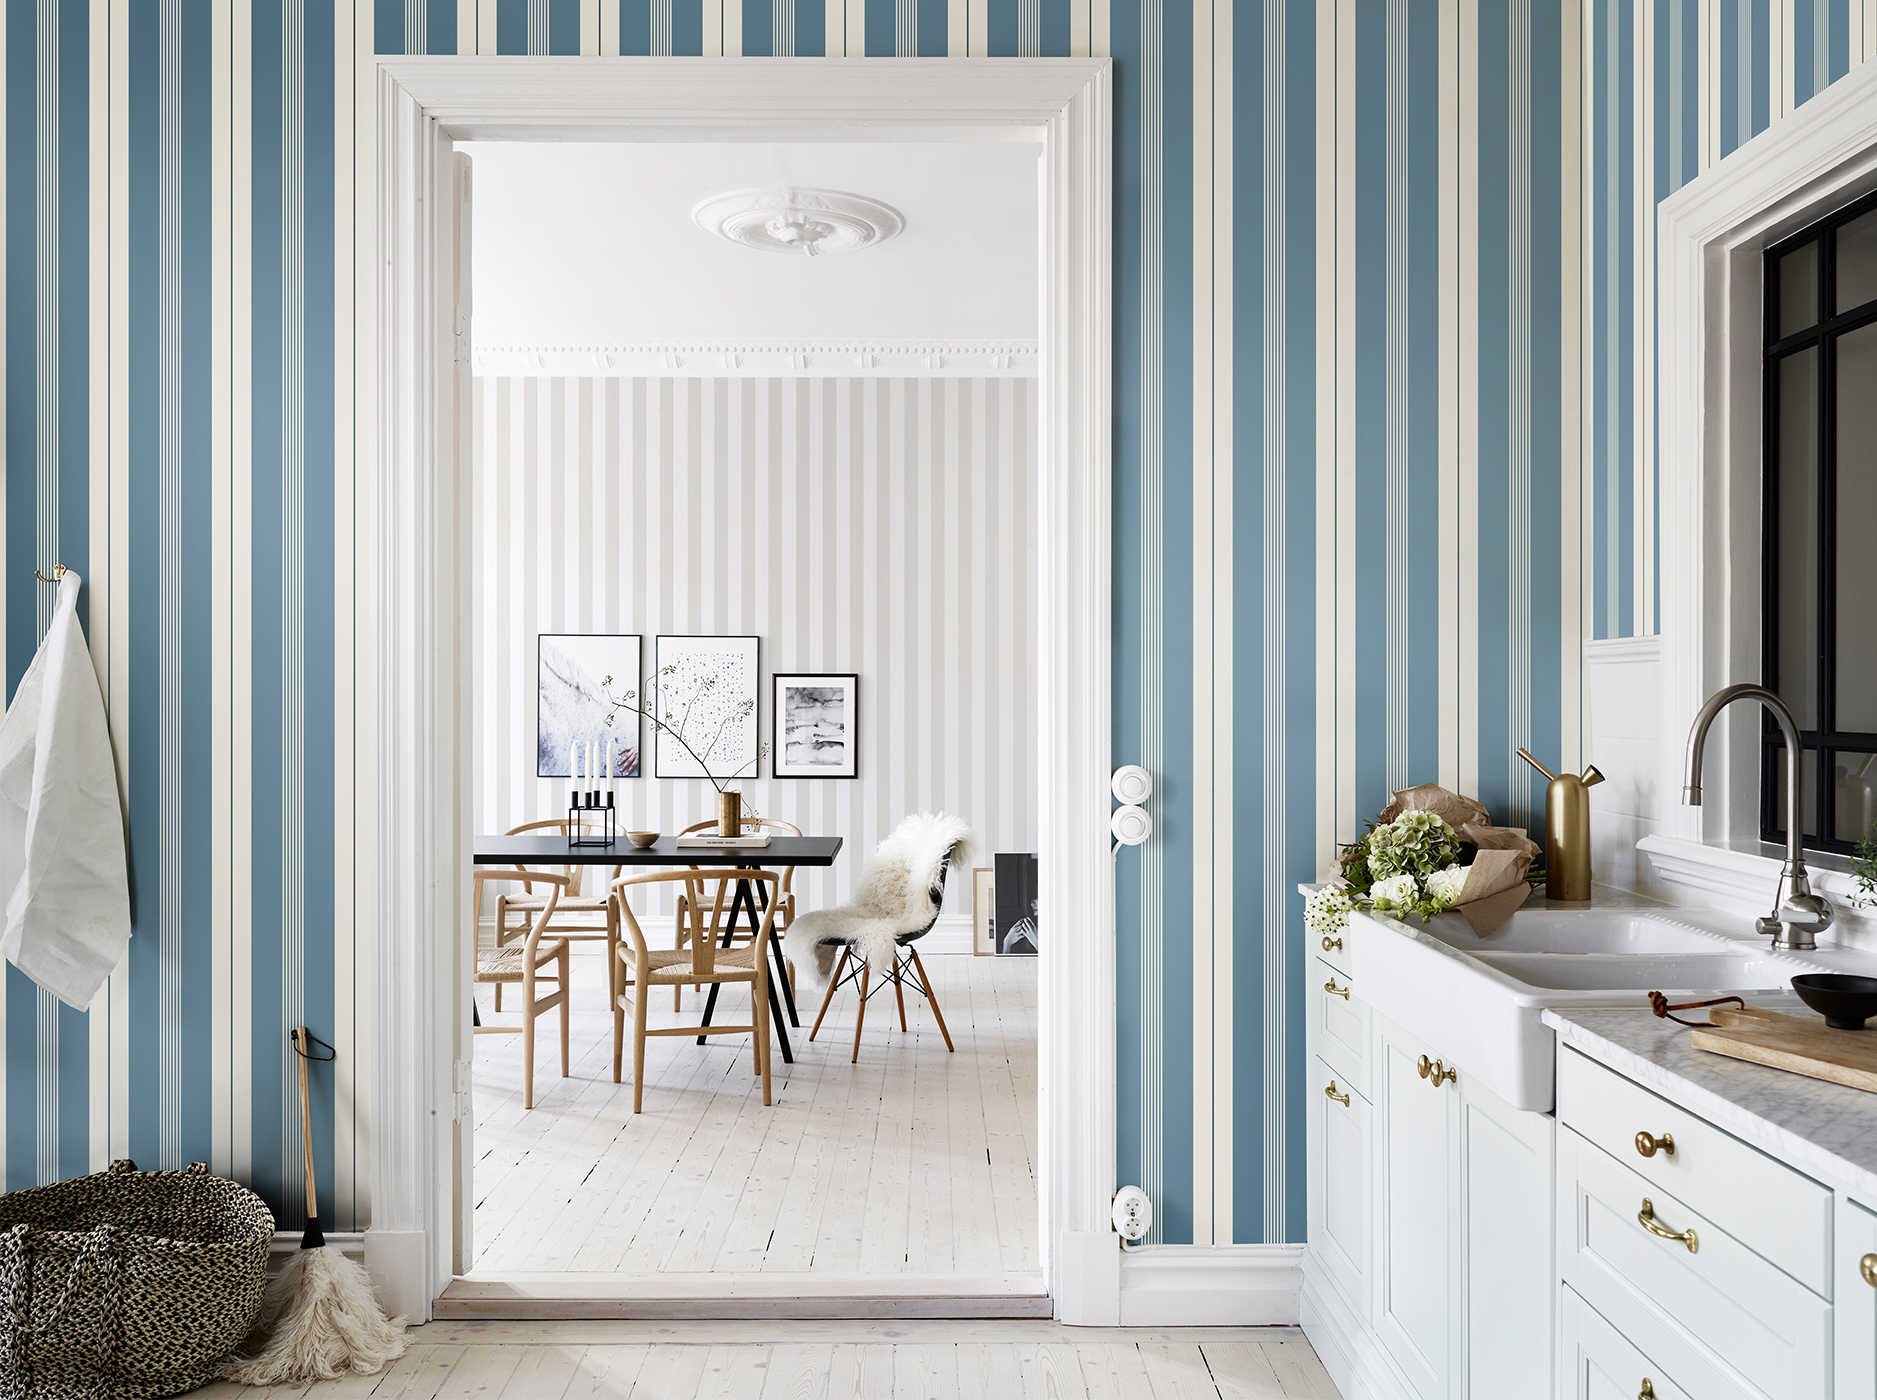 10 striped wallpaper design ideas bright bazaar by will taylor